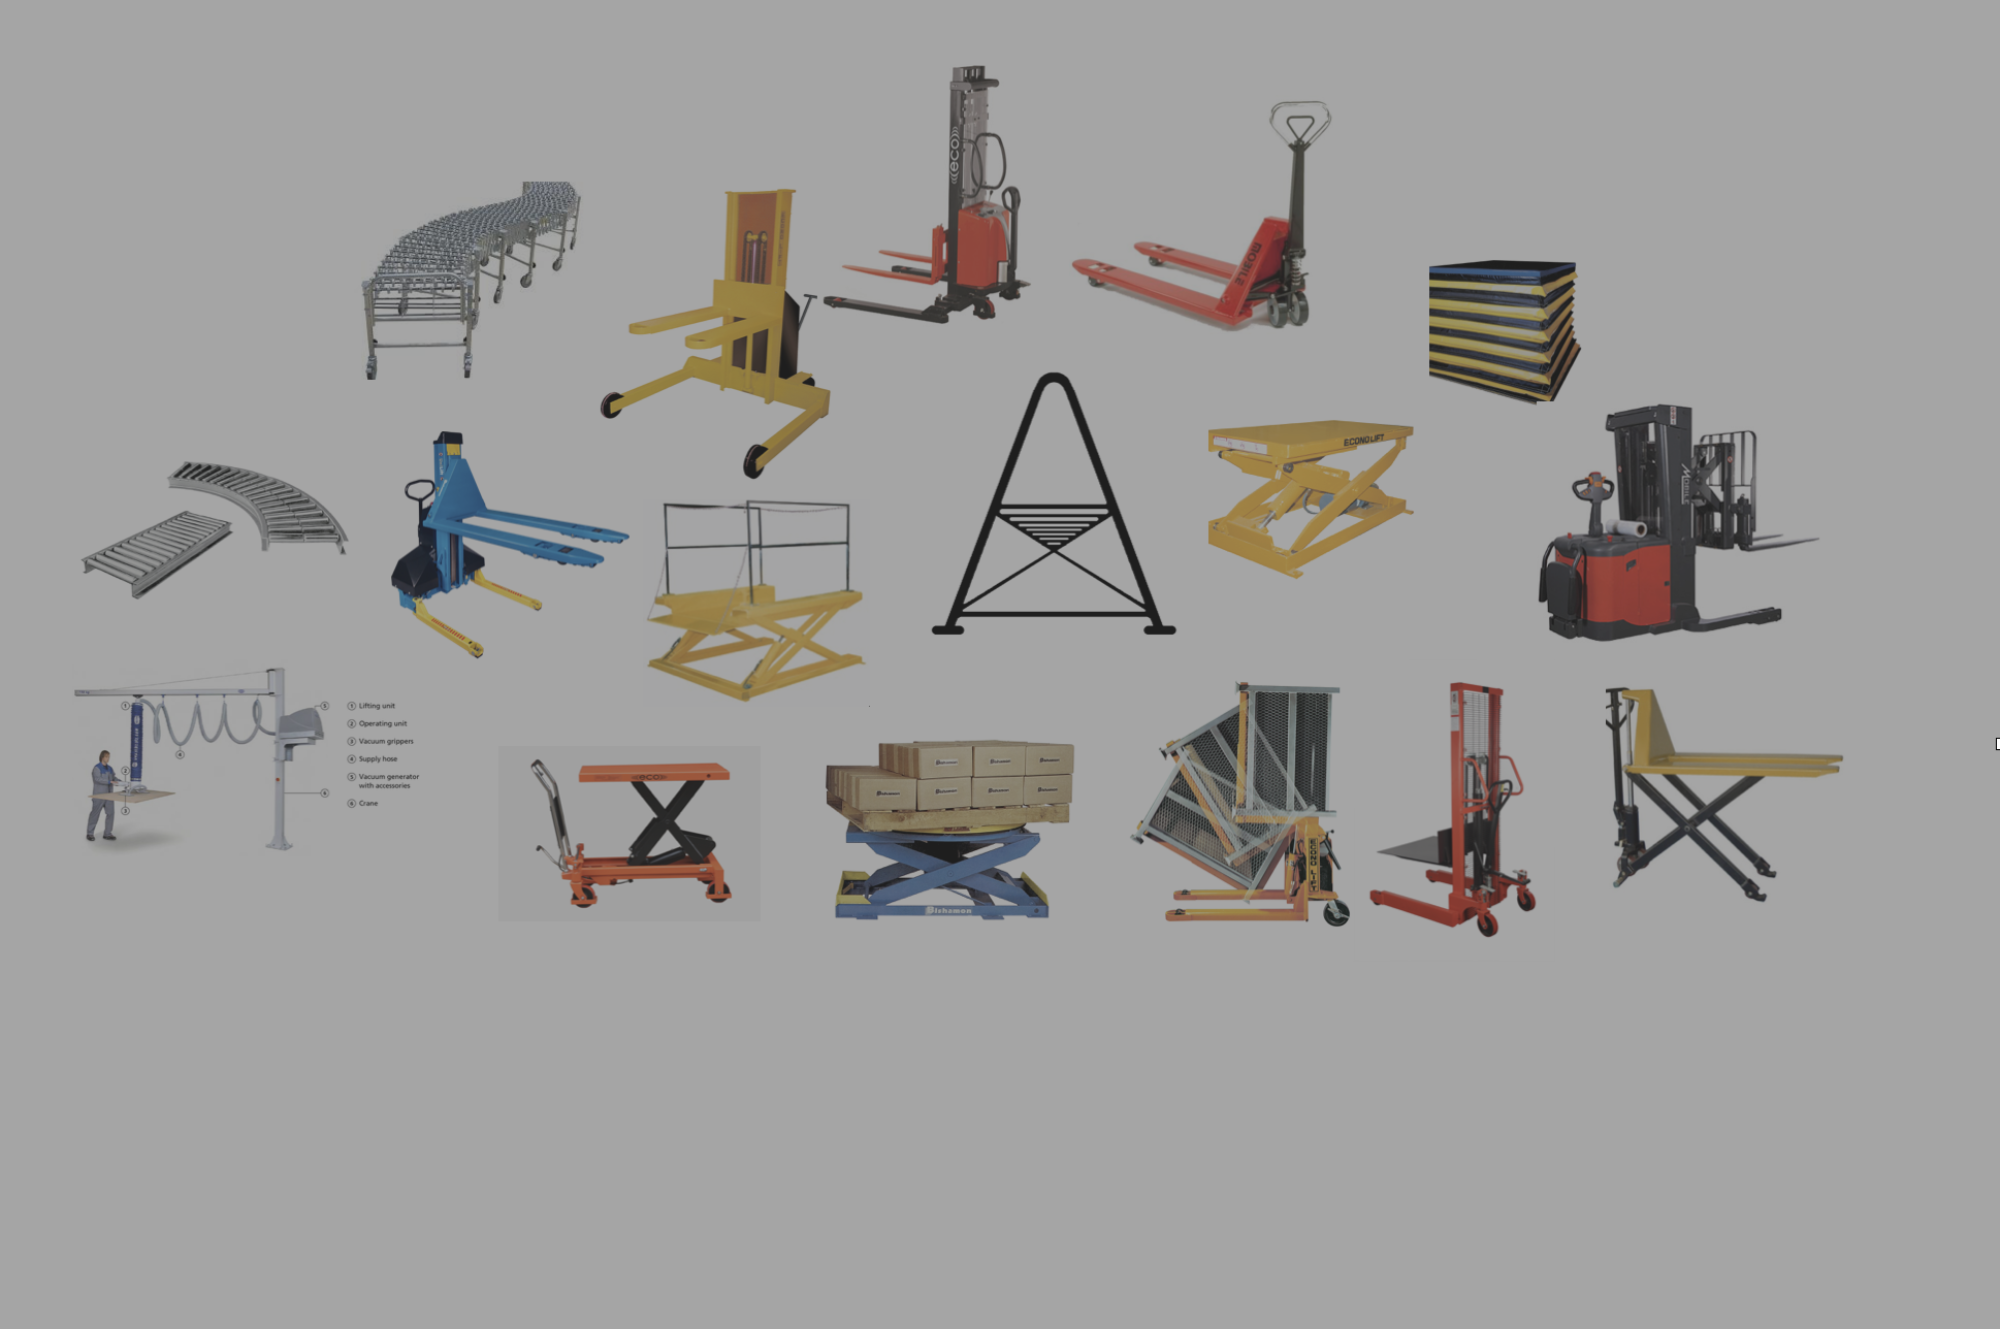 Aerdon equipment - ergonomic and material handling products & solutions